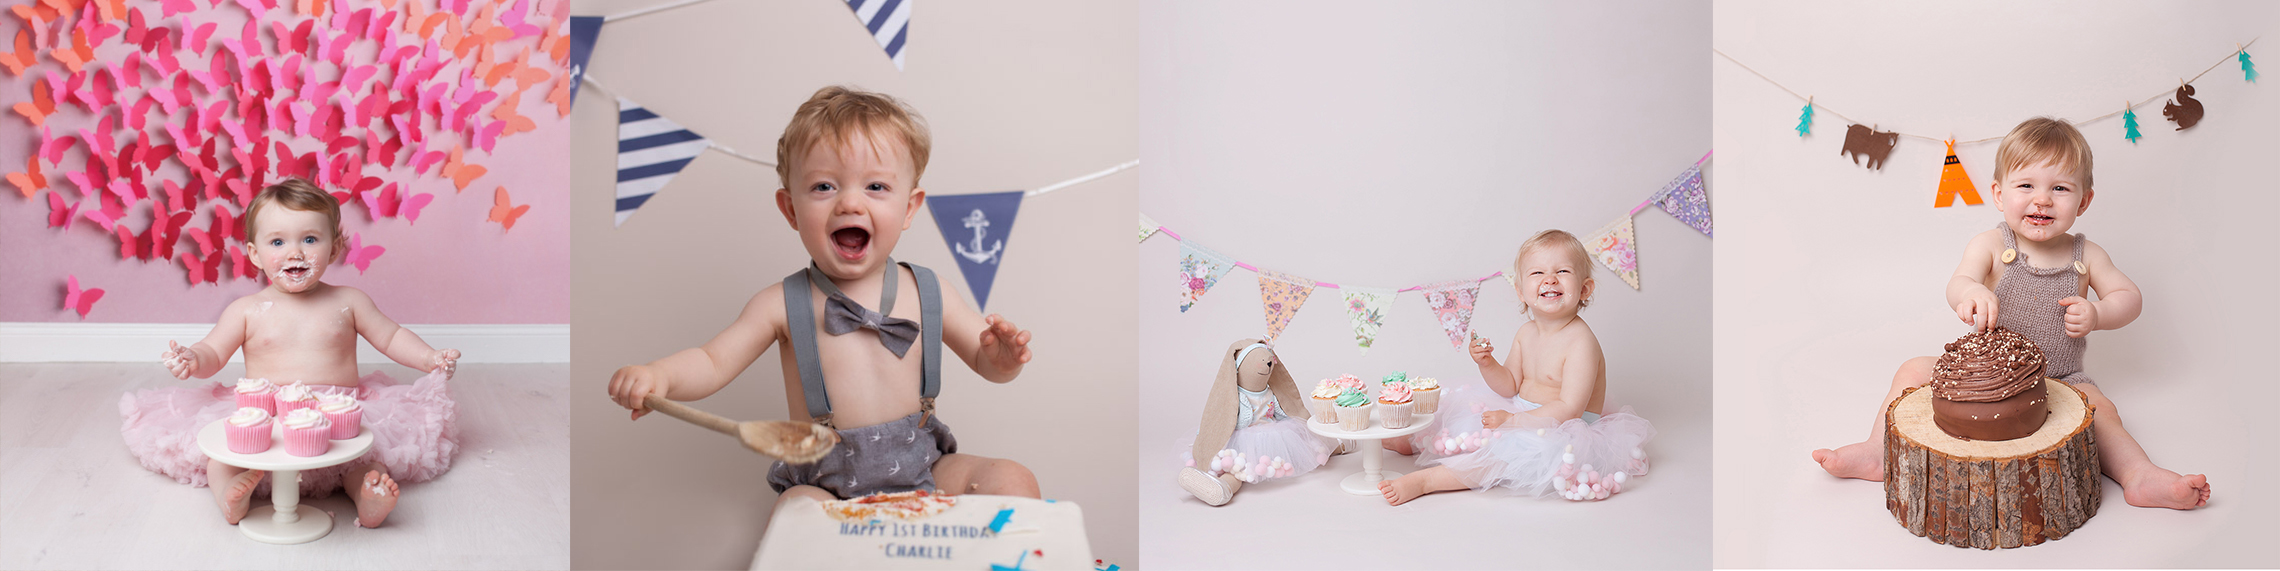 cake smash photoshoot Edinburgh, montage of professional cake smash photos by Edinburgh photographer Beautiful Bairns